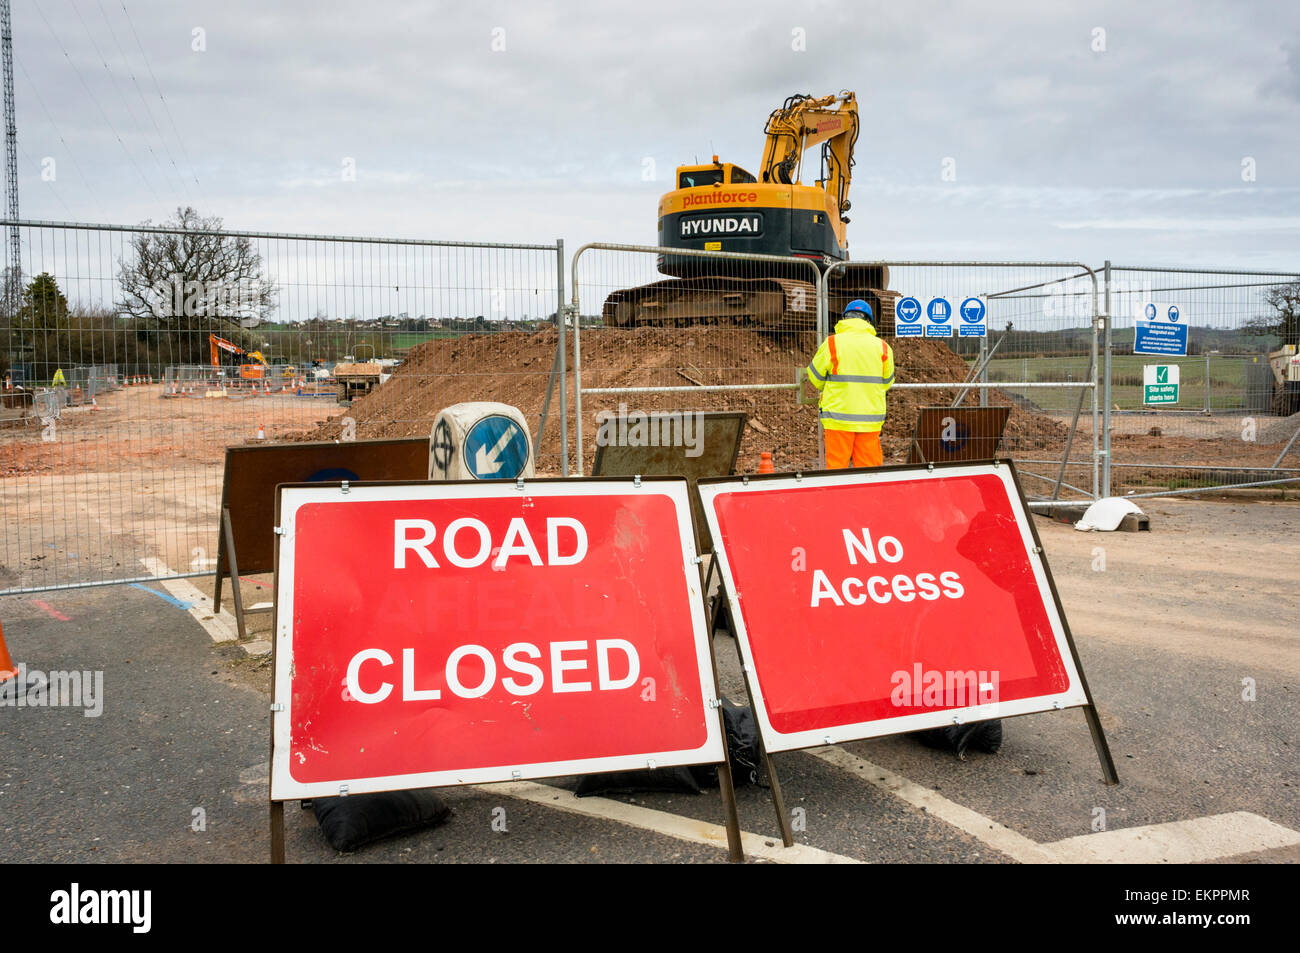 Road closed sign with road works and construction workers building a new road, England, UK - Stock Image